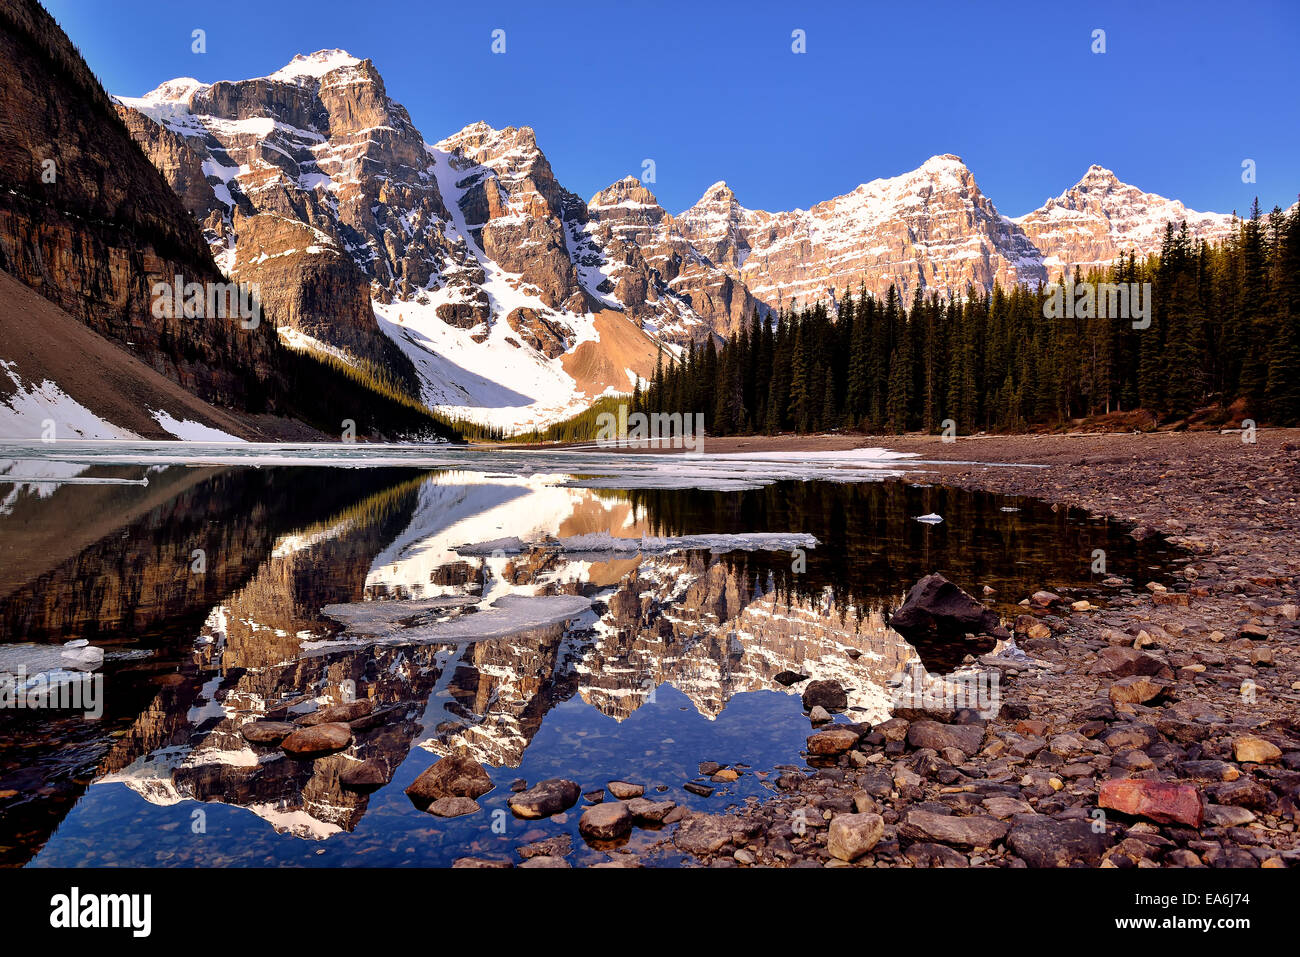 Canada, Banff National Park, View of Moraine Lake and Valley of the Ten Peaks - Stock Image